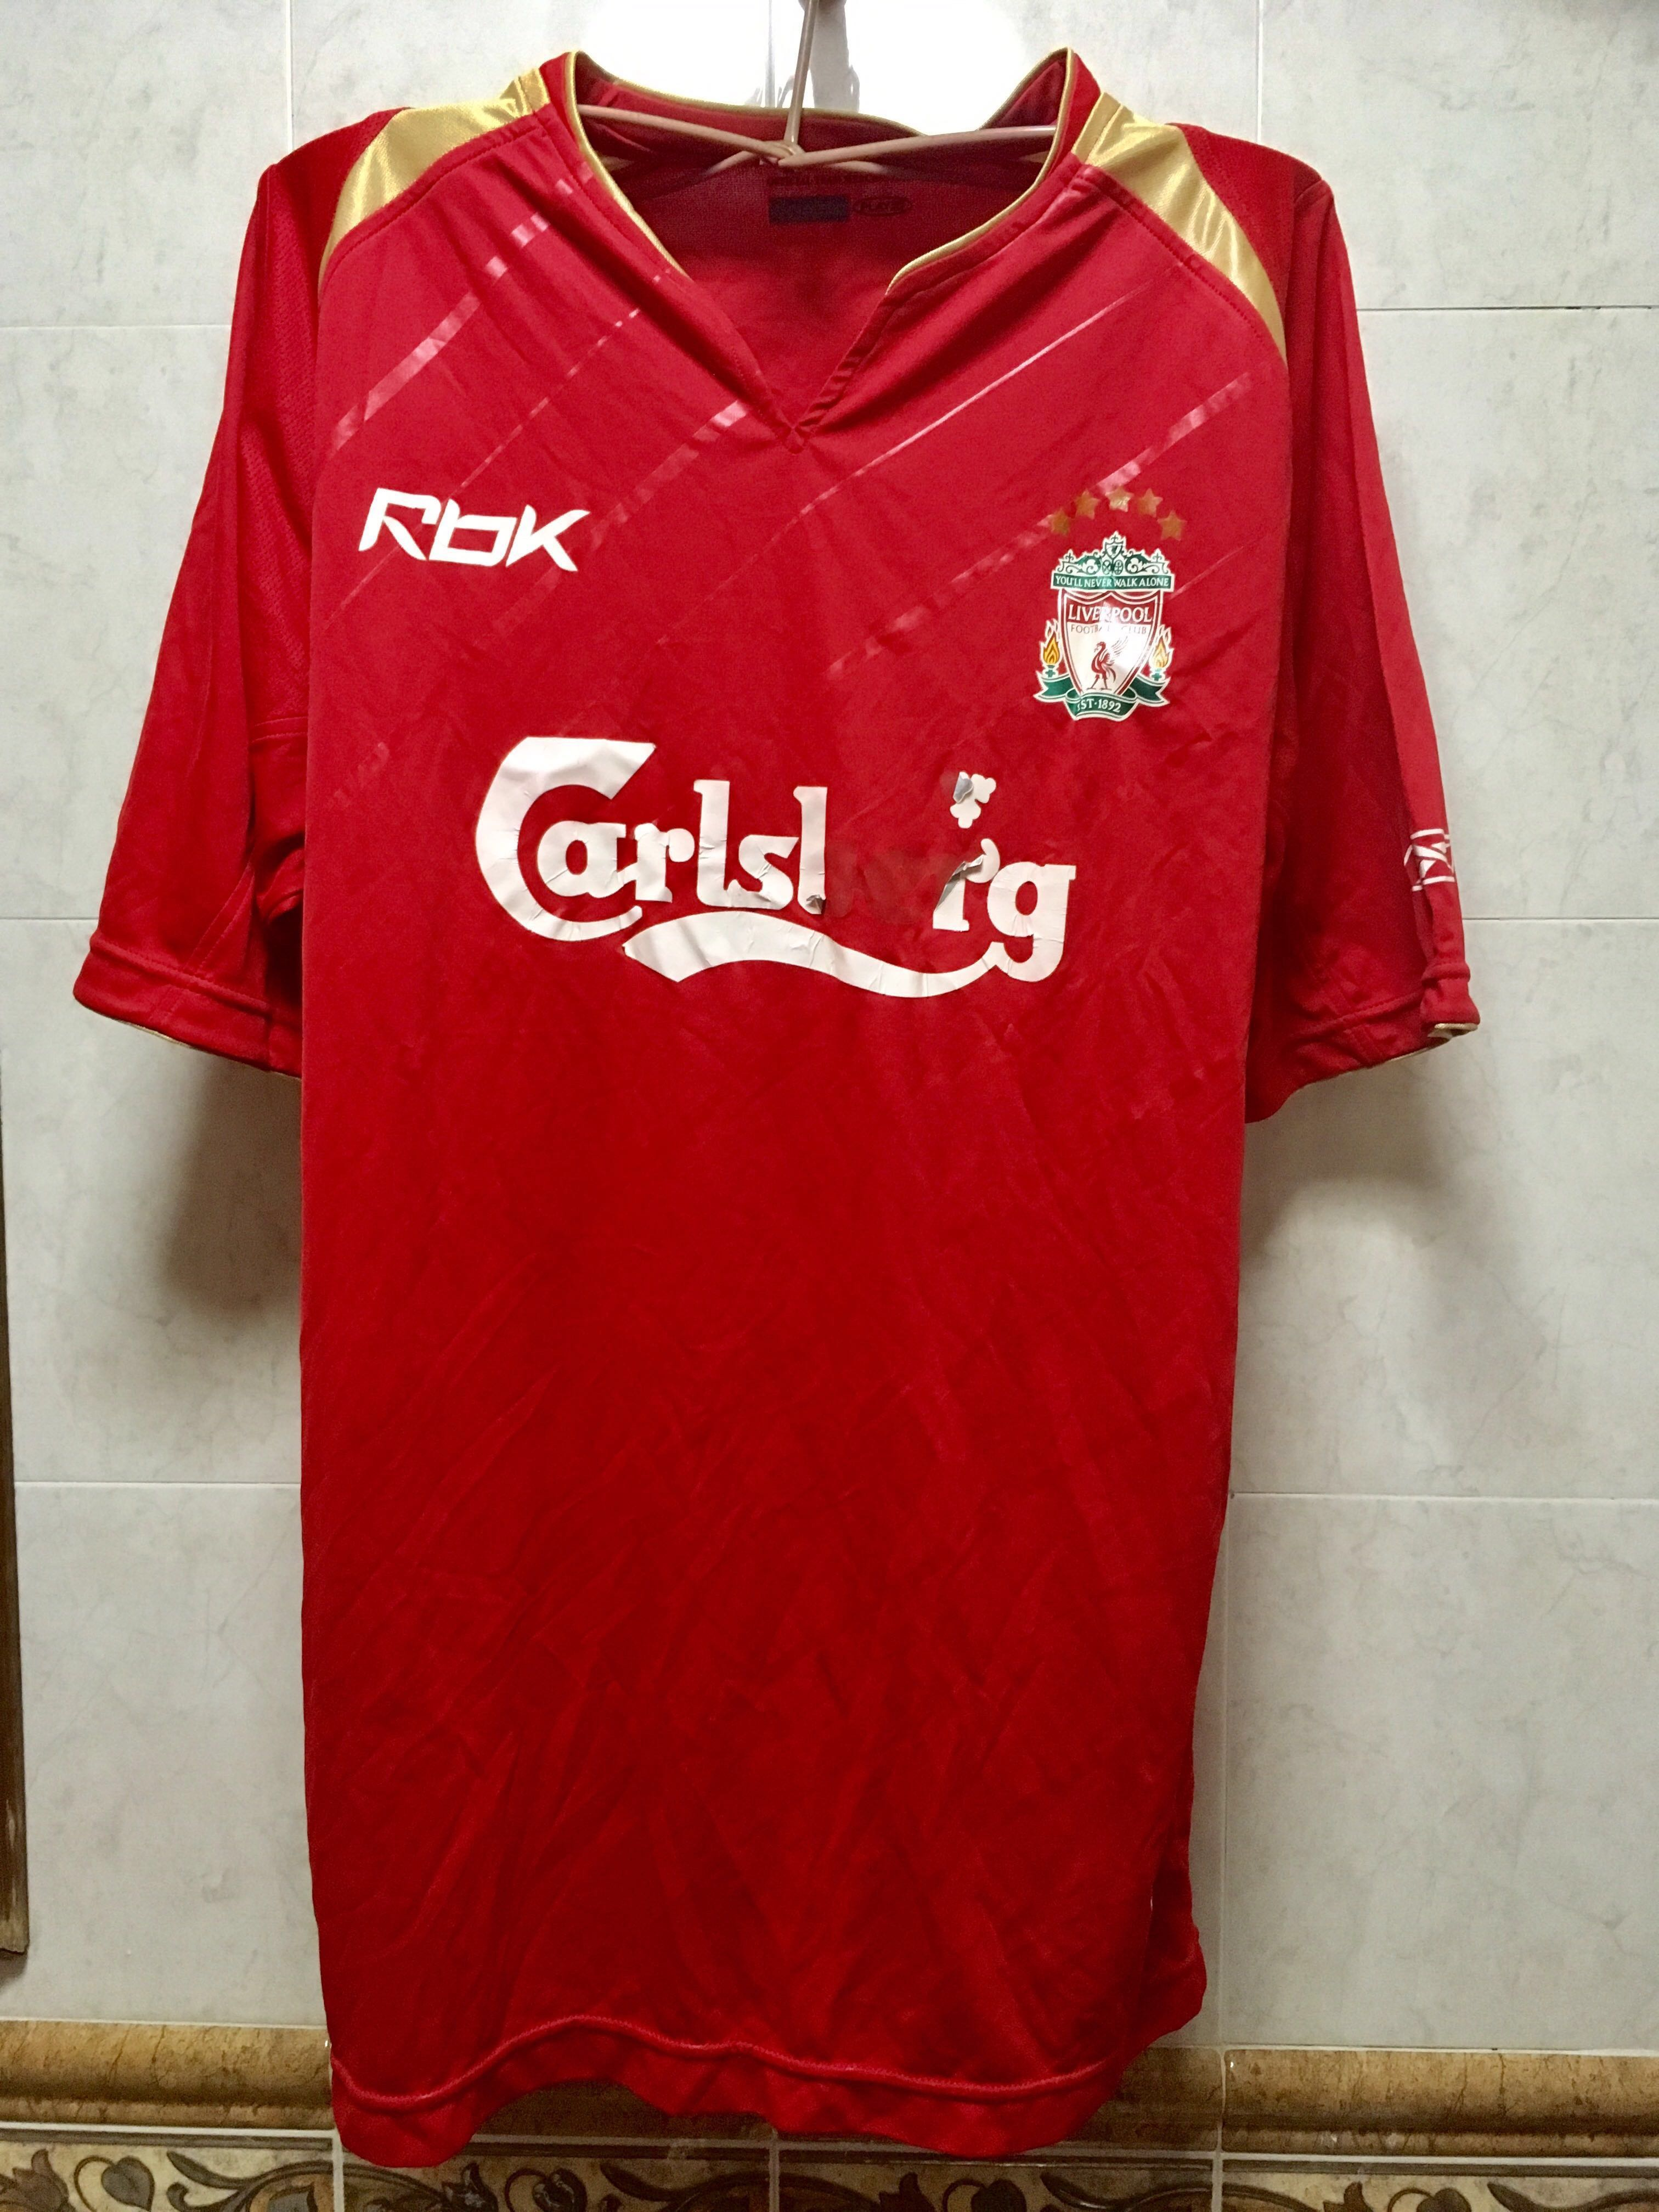 480193a4b25 Authentic Liverpool FC jersey UK US M size